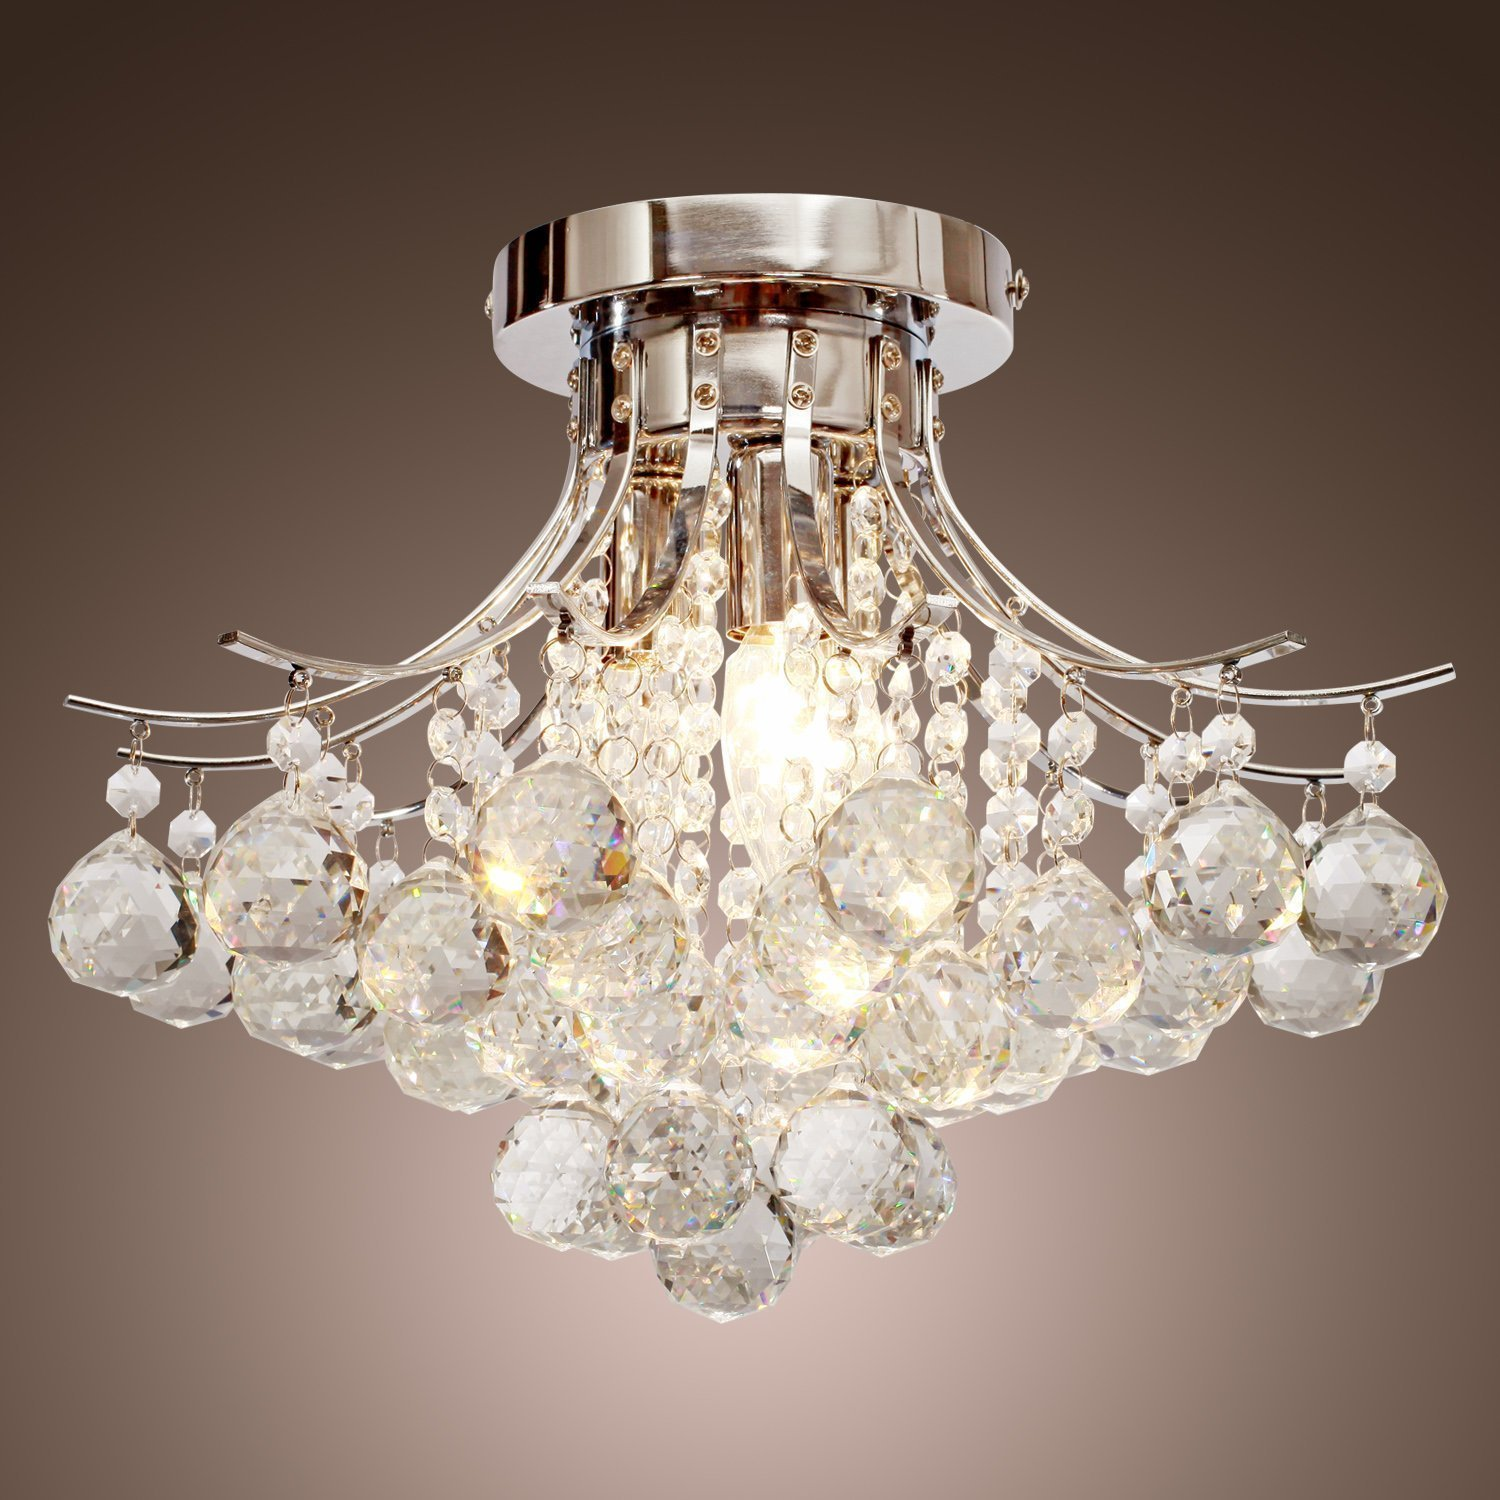 Stunning LOCO Chrome Finish Crystal Chandelier with lights Mini Style Flush Mount Ceiling Light Fixture